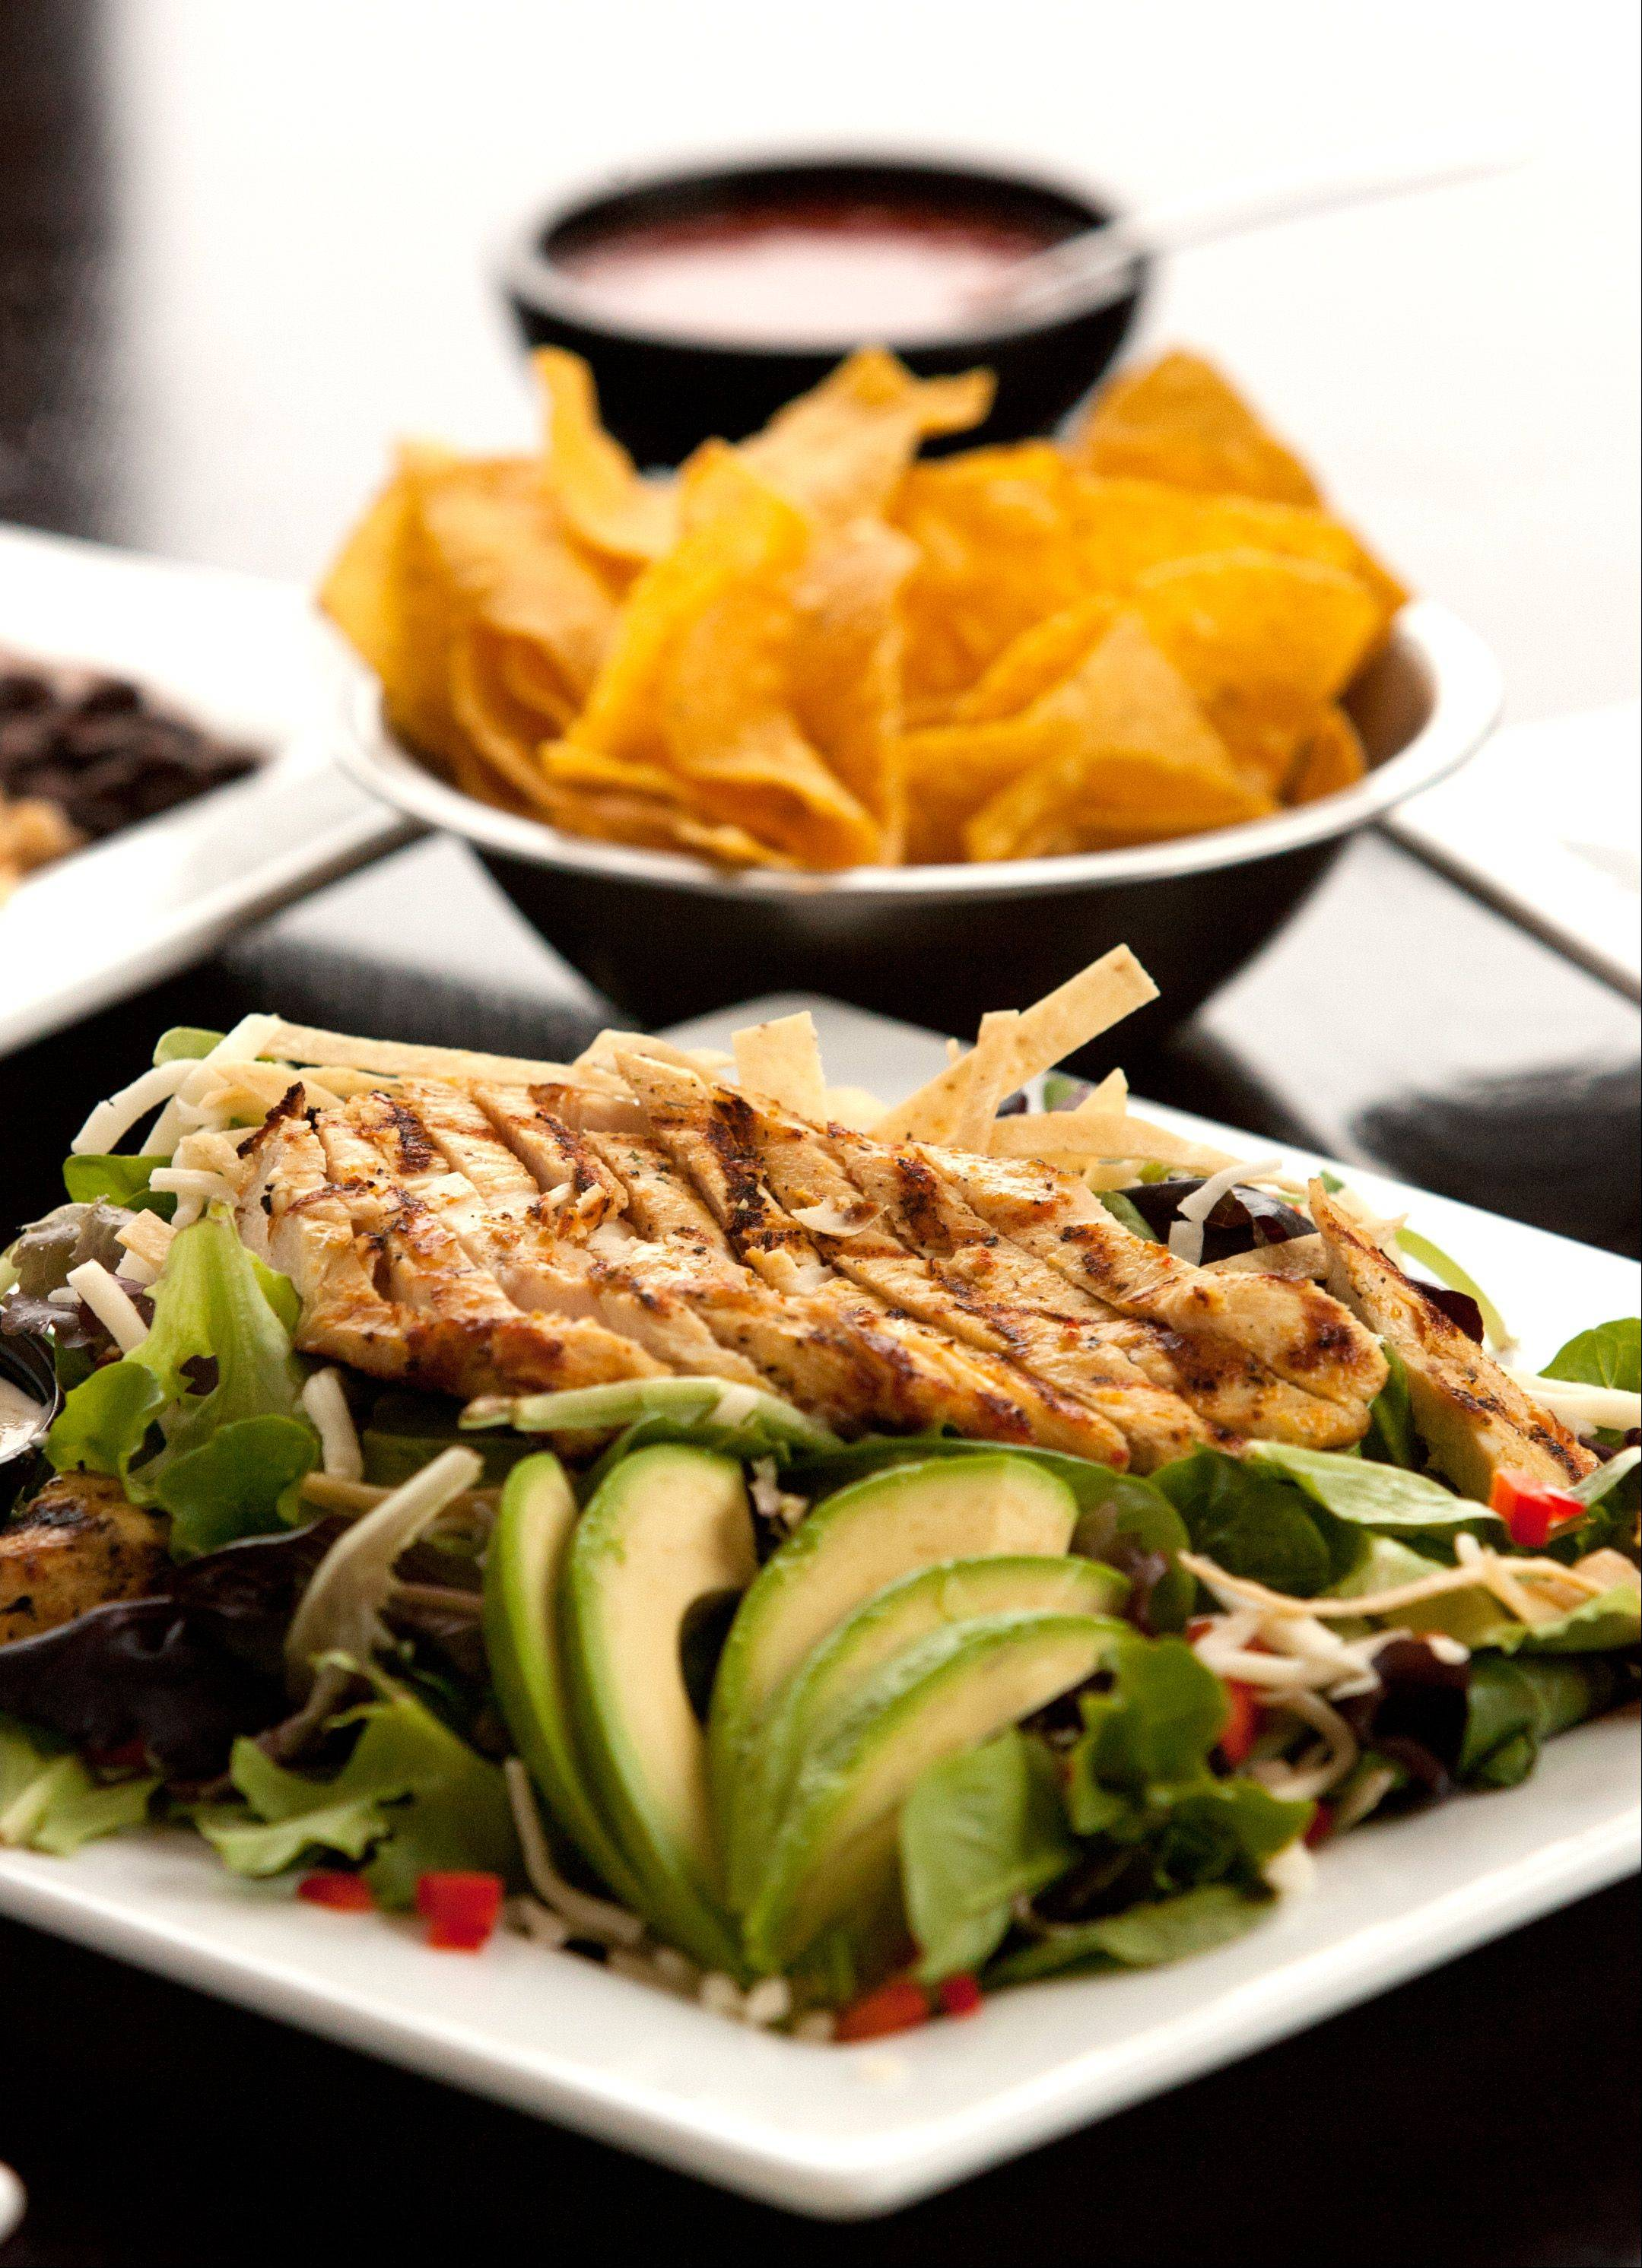 Spring greens, Monterey Jack cheese, tortilla strips, red peppers and avocado make up the grilled chicken breast salad at Burrito Parrilla Mexicana in Lombard.